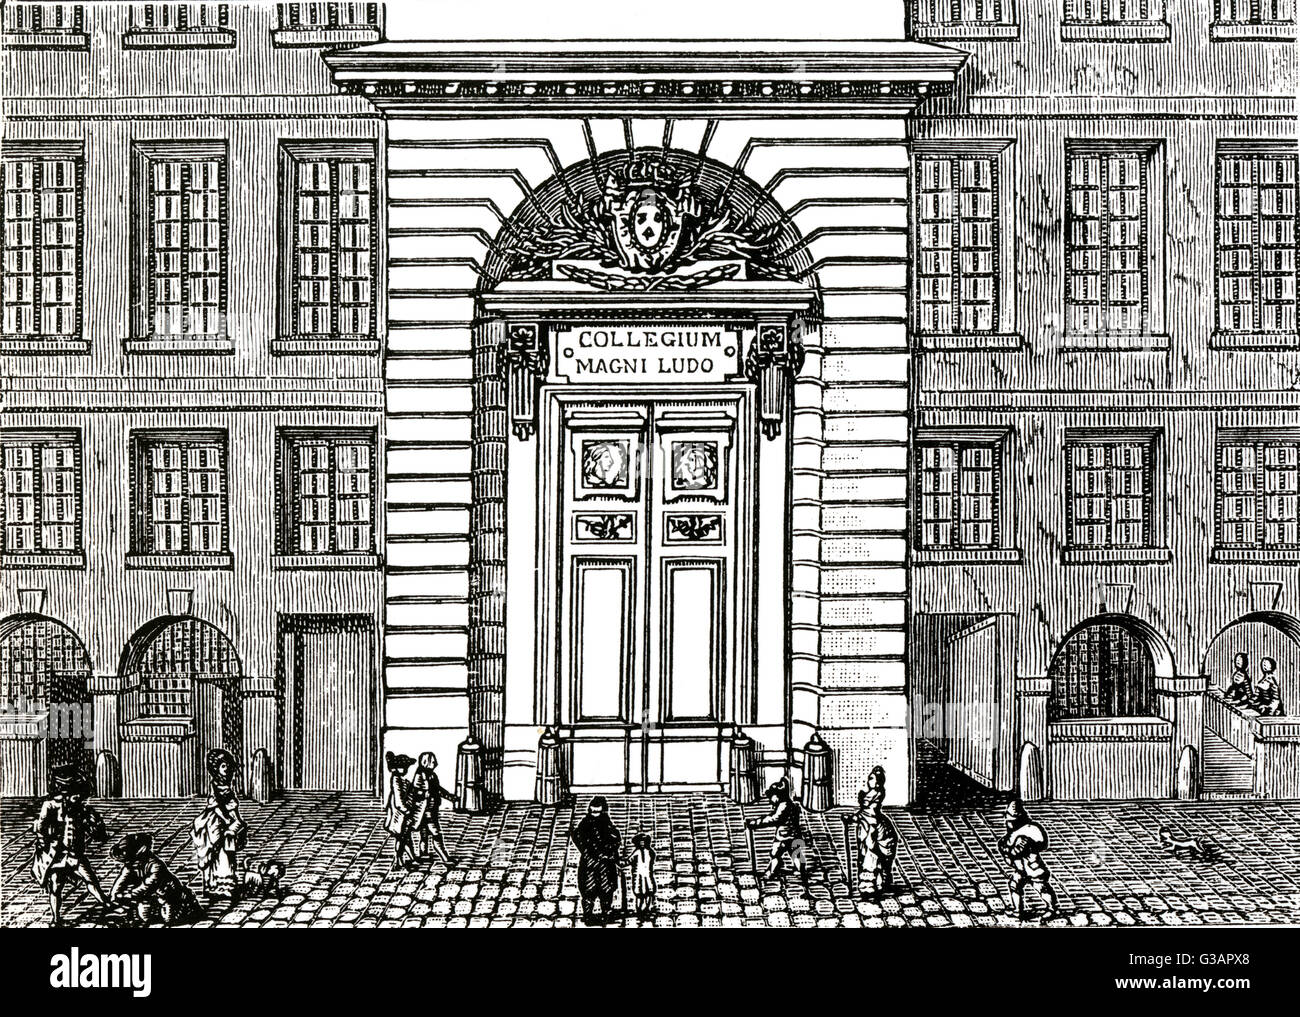 Paris, France - Collège Louis-le-Grand. Date : vers 1789 Banque D'Images